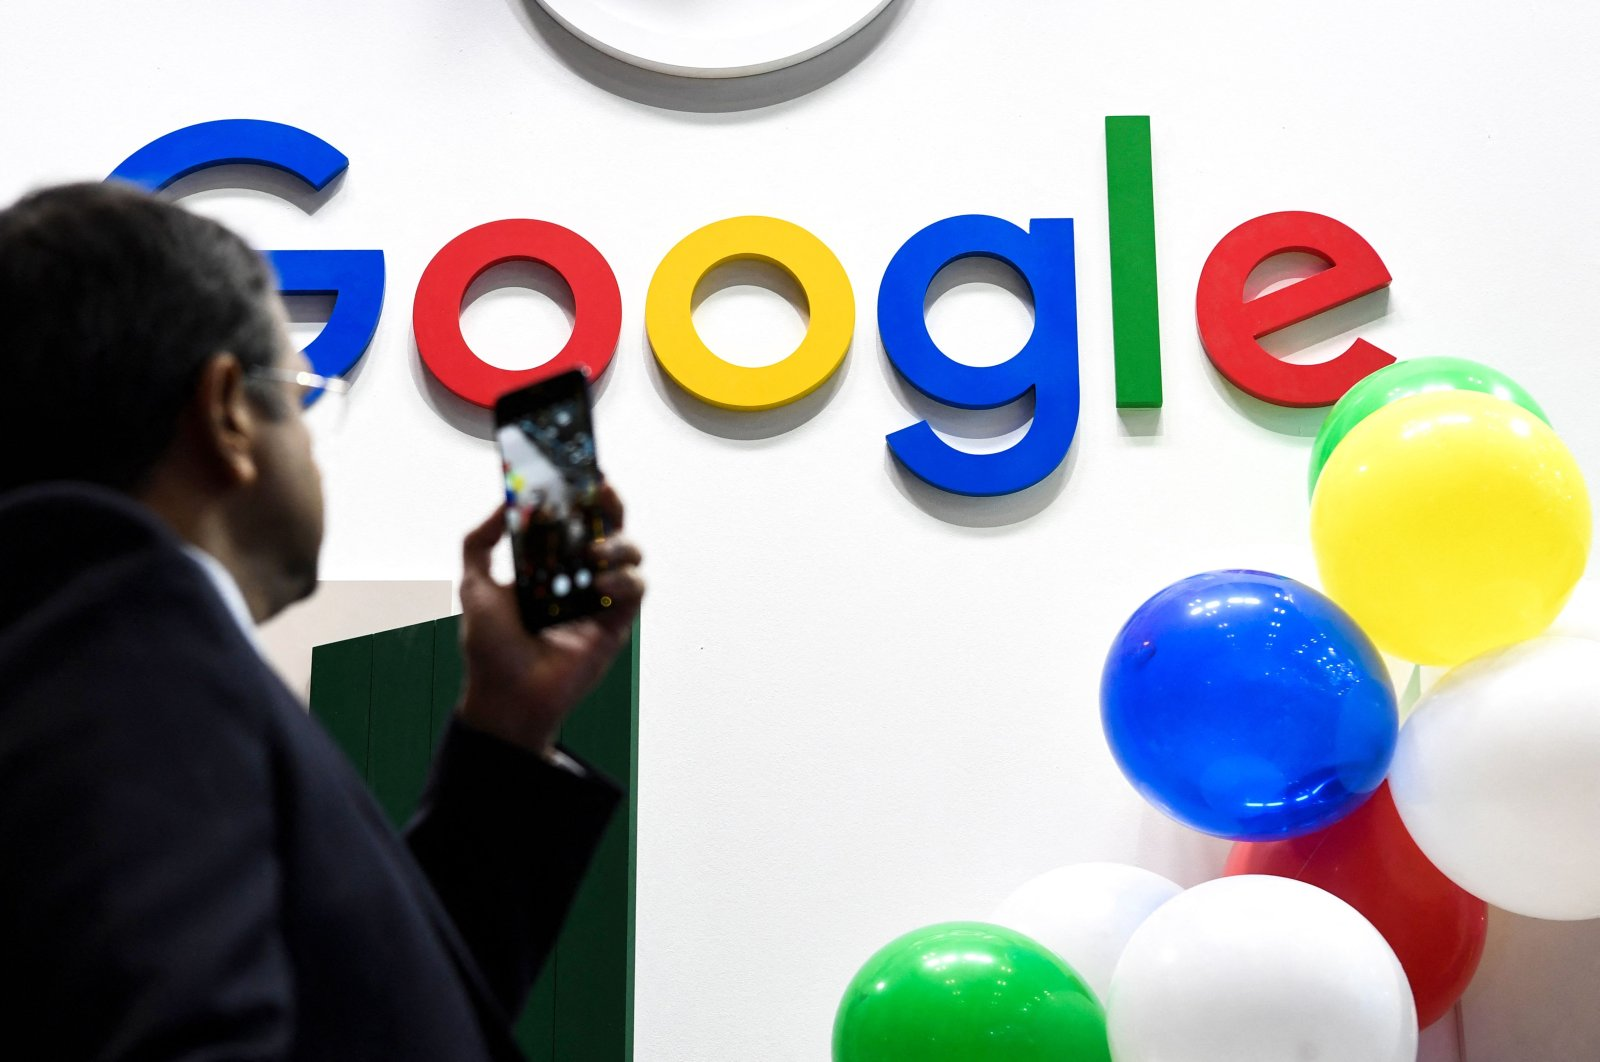 A man takes a picture with his mobile phone of the logo of the U.S. multinational technology and internet-related services company Google as he visits the Vivatech startups and innovation fair, Paris, France, May 16, 2019. (AFP File Photo)